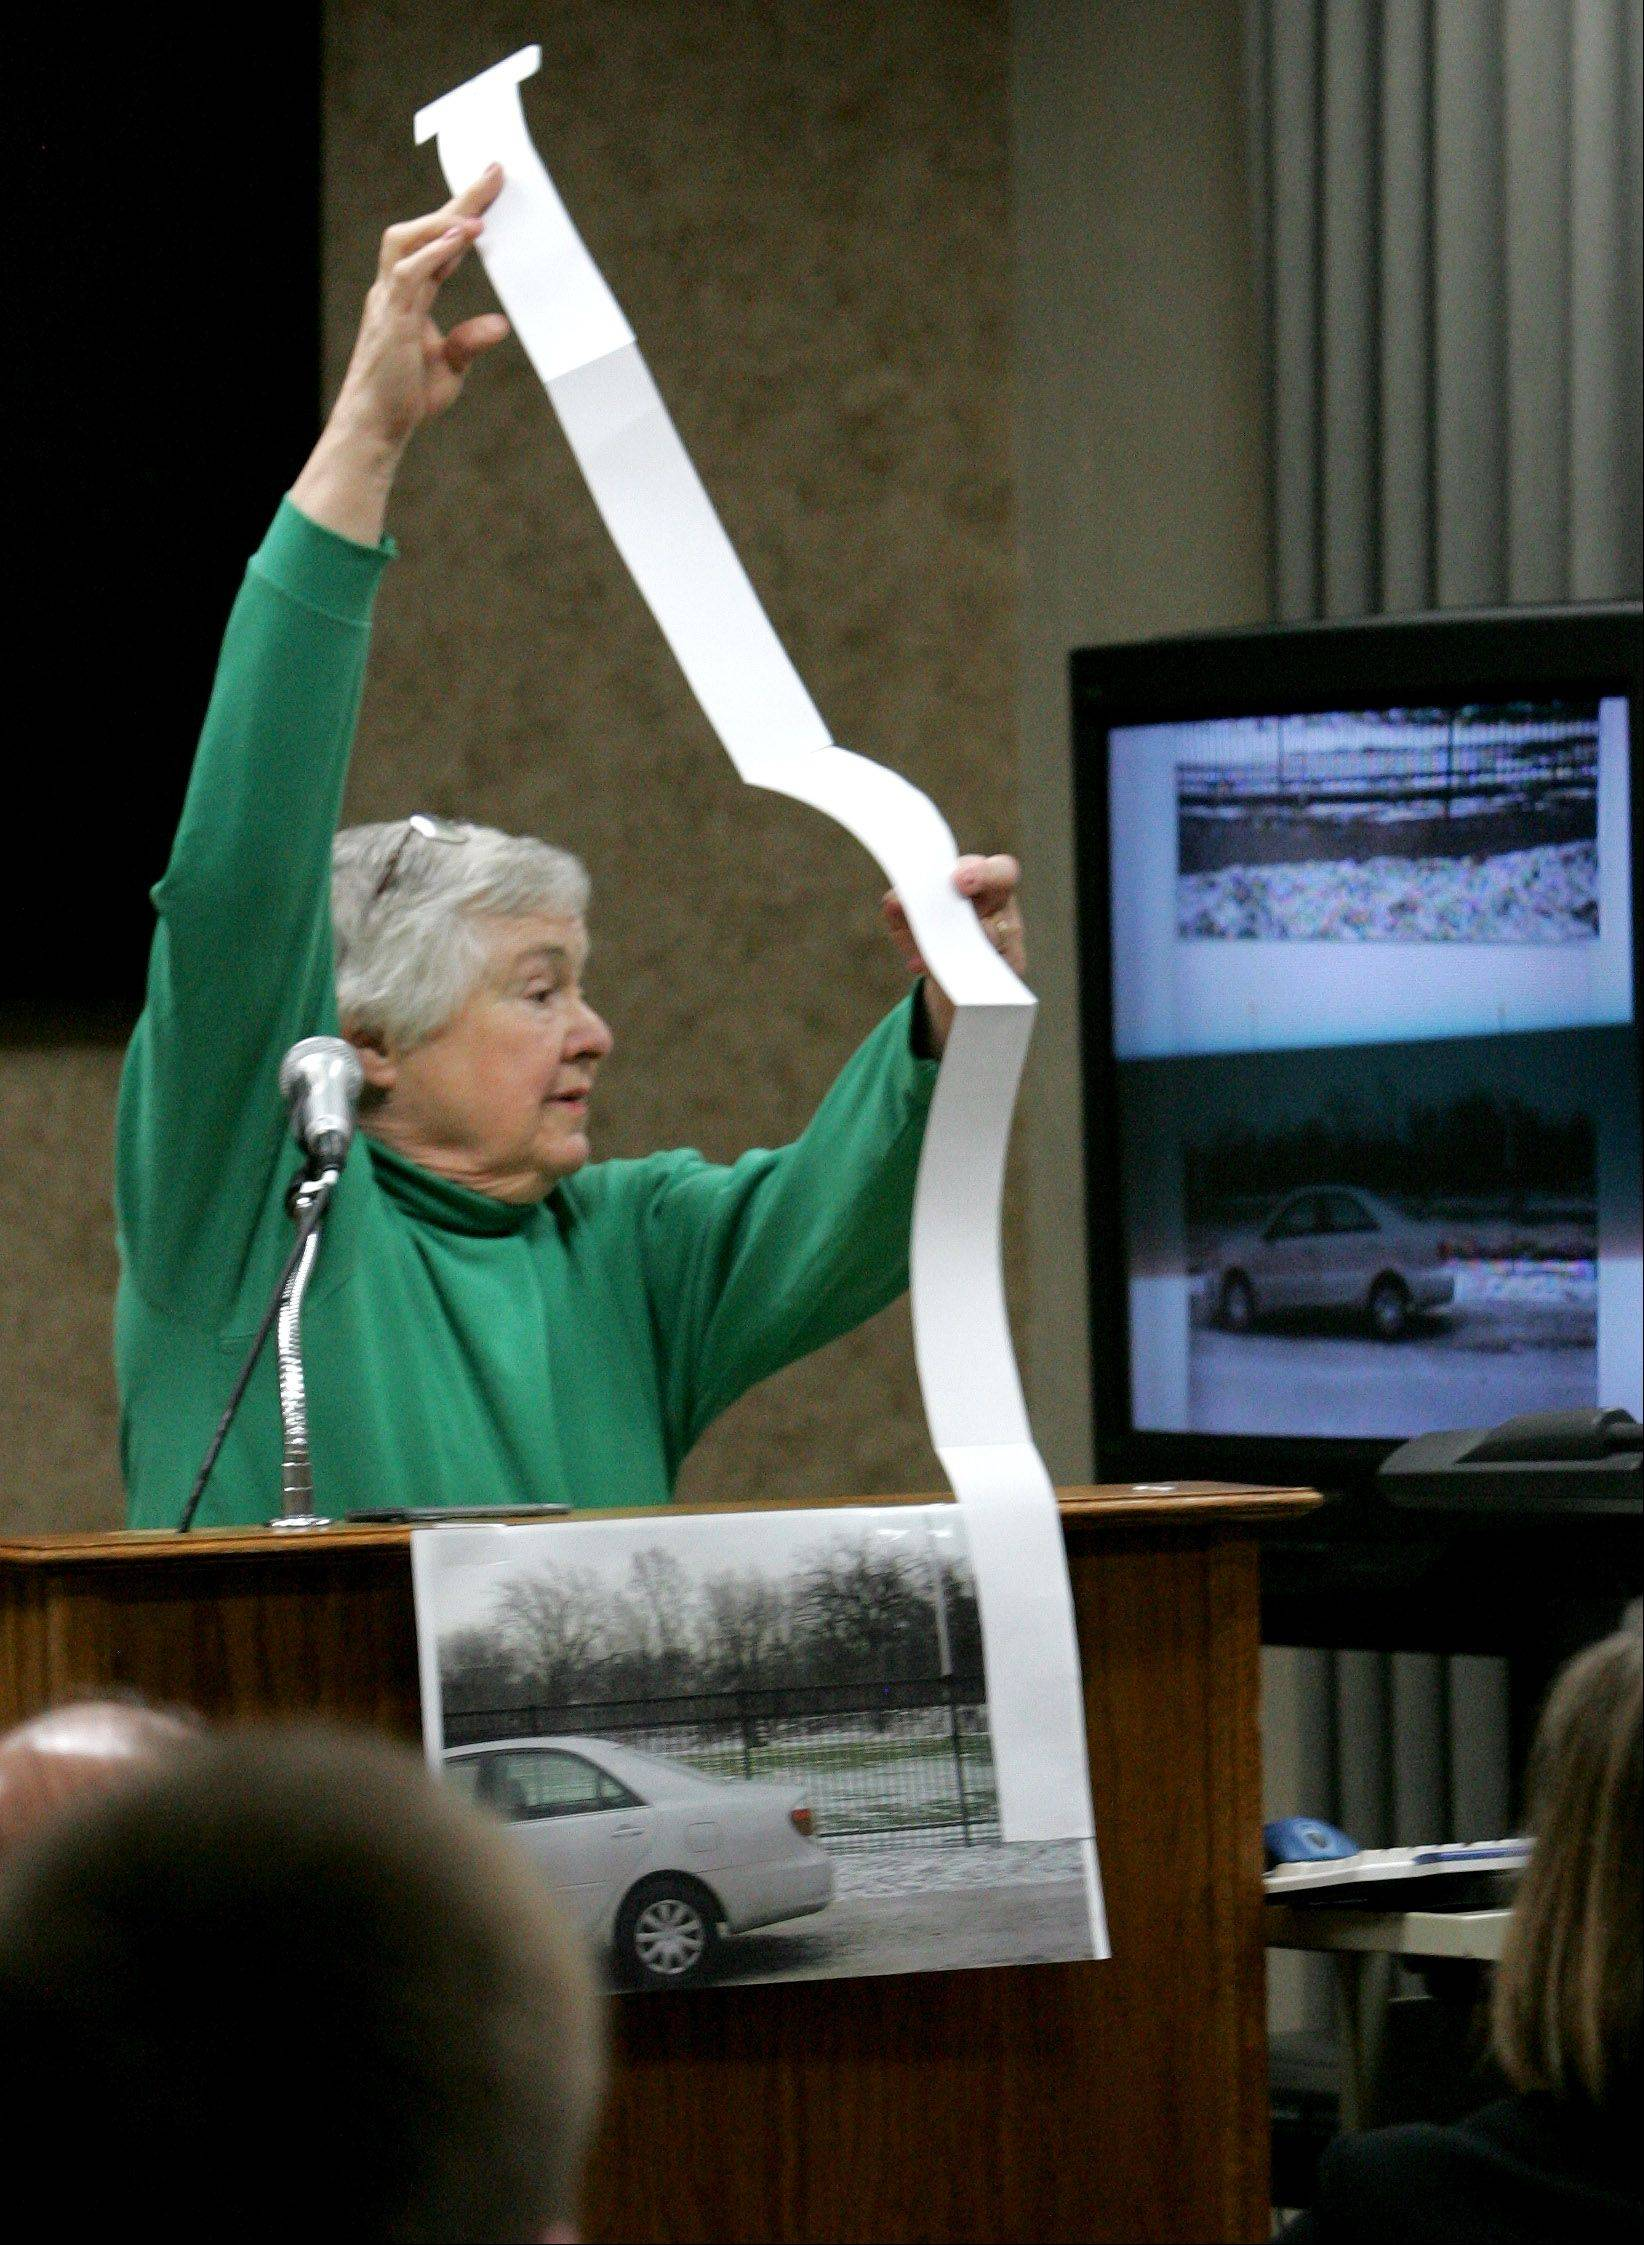 Glen Ellyn resident Rinda Allison demonstrates how tall the proposed lights at Memorial Field will be during public comment at a village board meeting Monday.